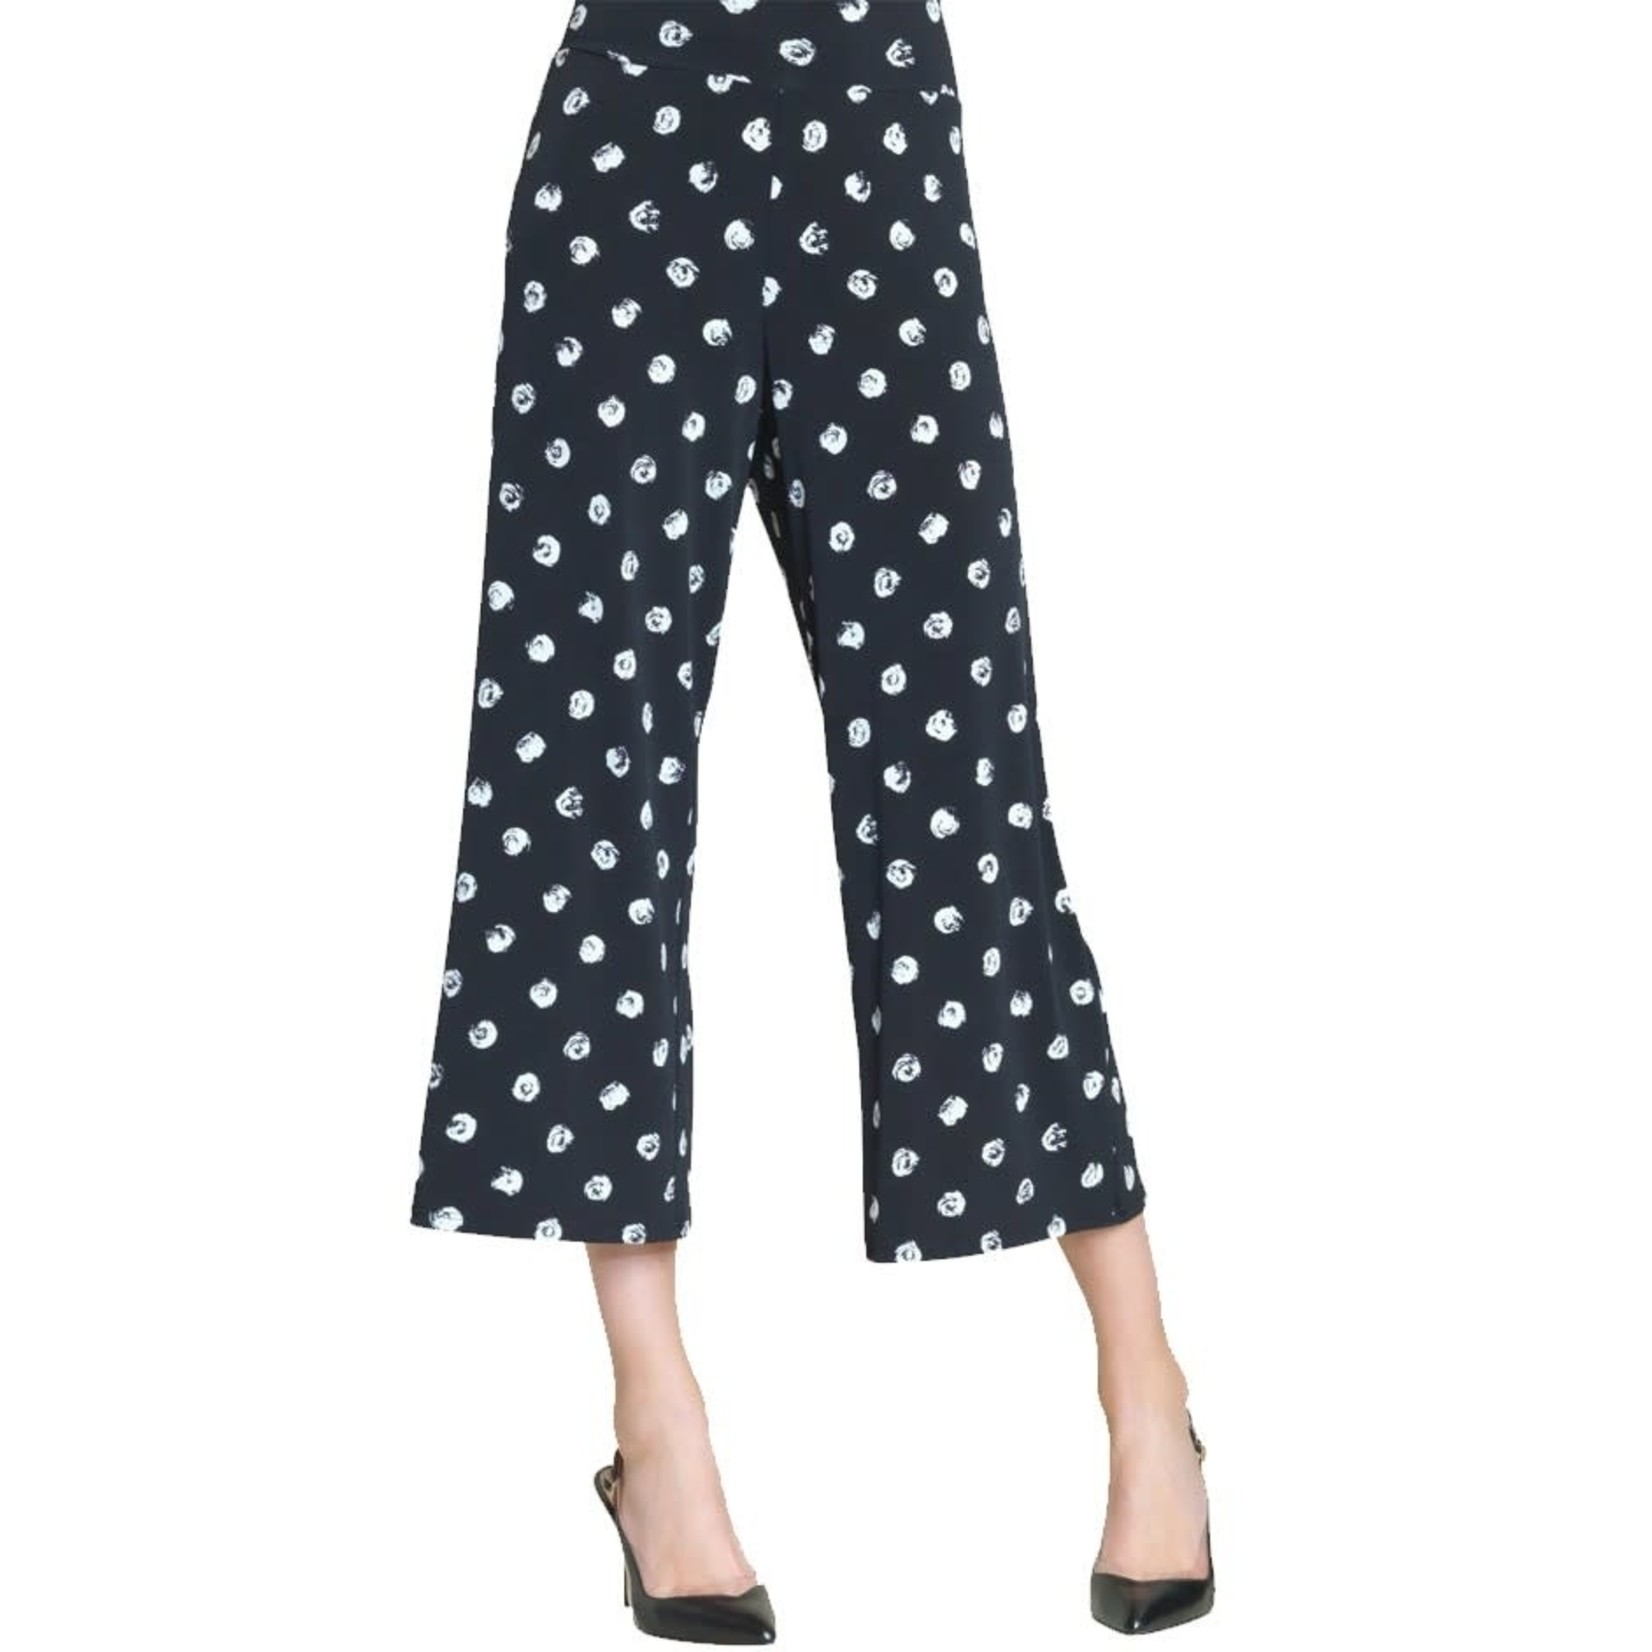 Clara Sunwoo Mini-Rose Polka Dot Print Soft Knit Gaucho